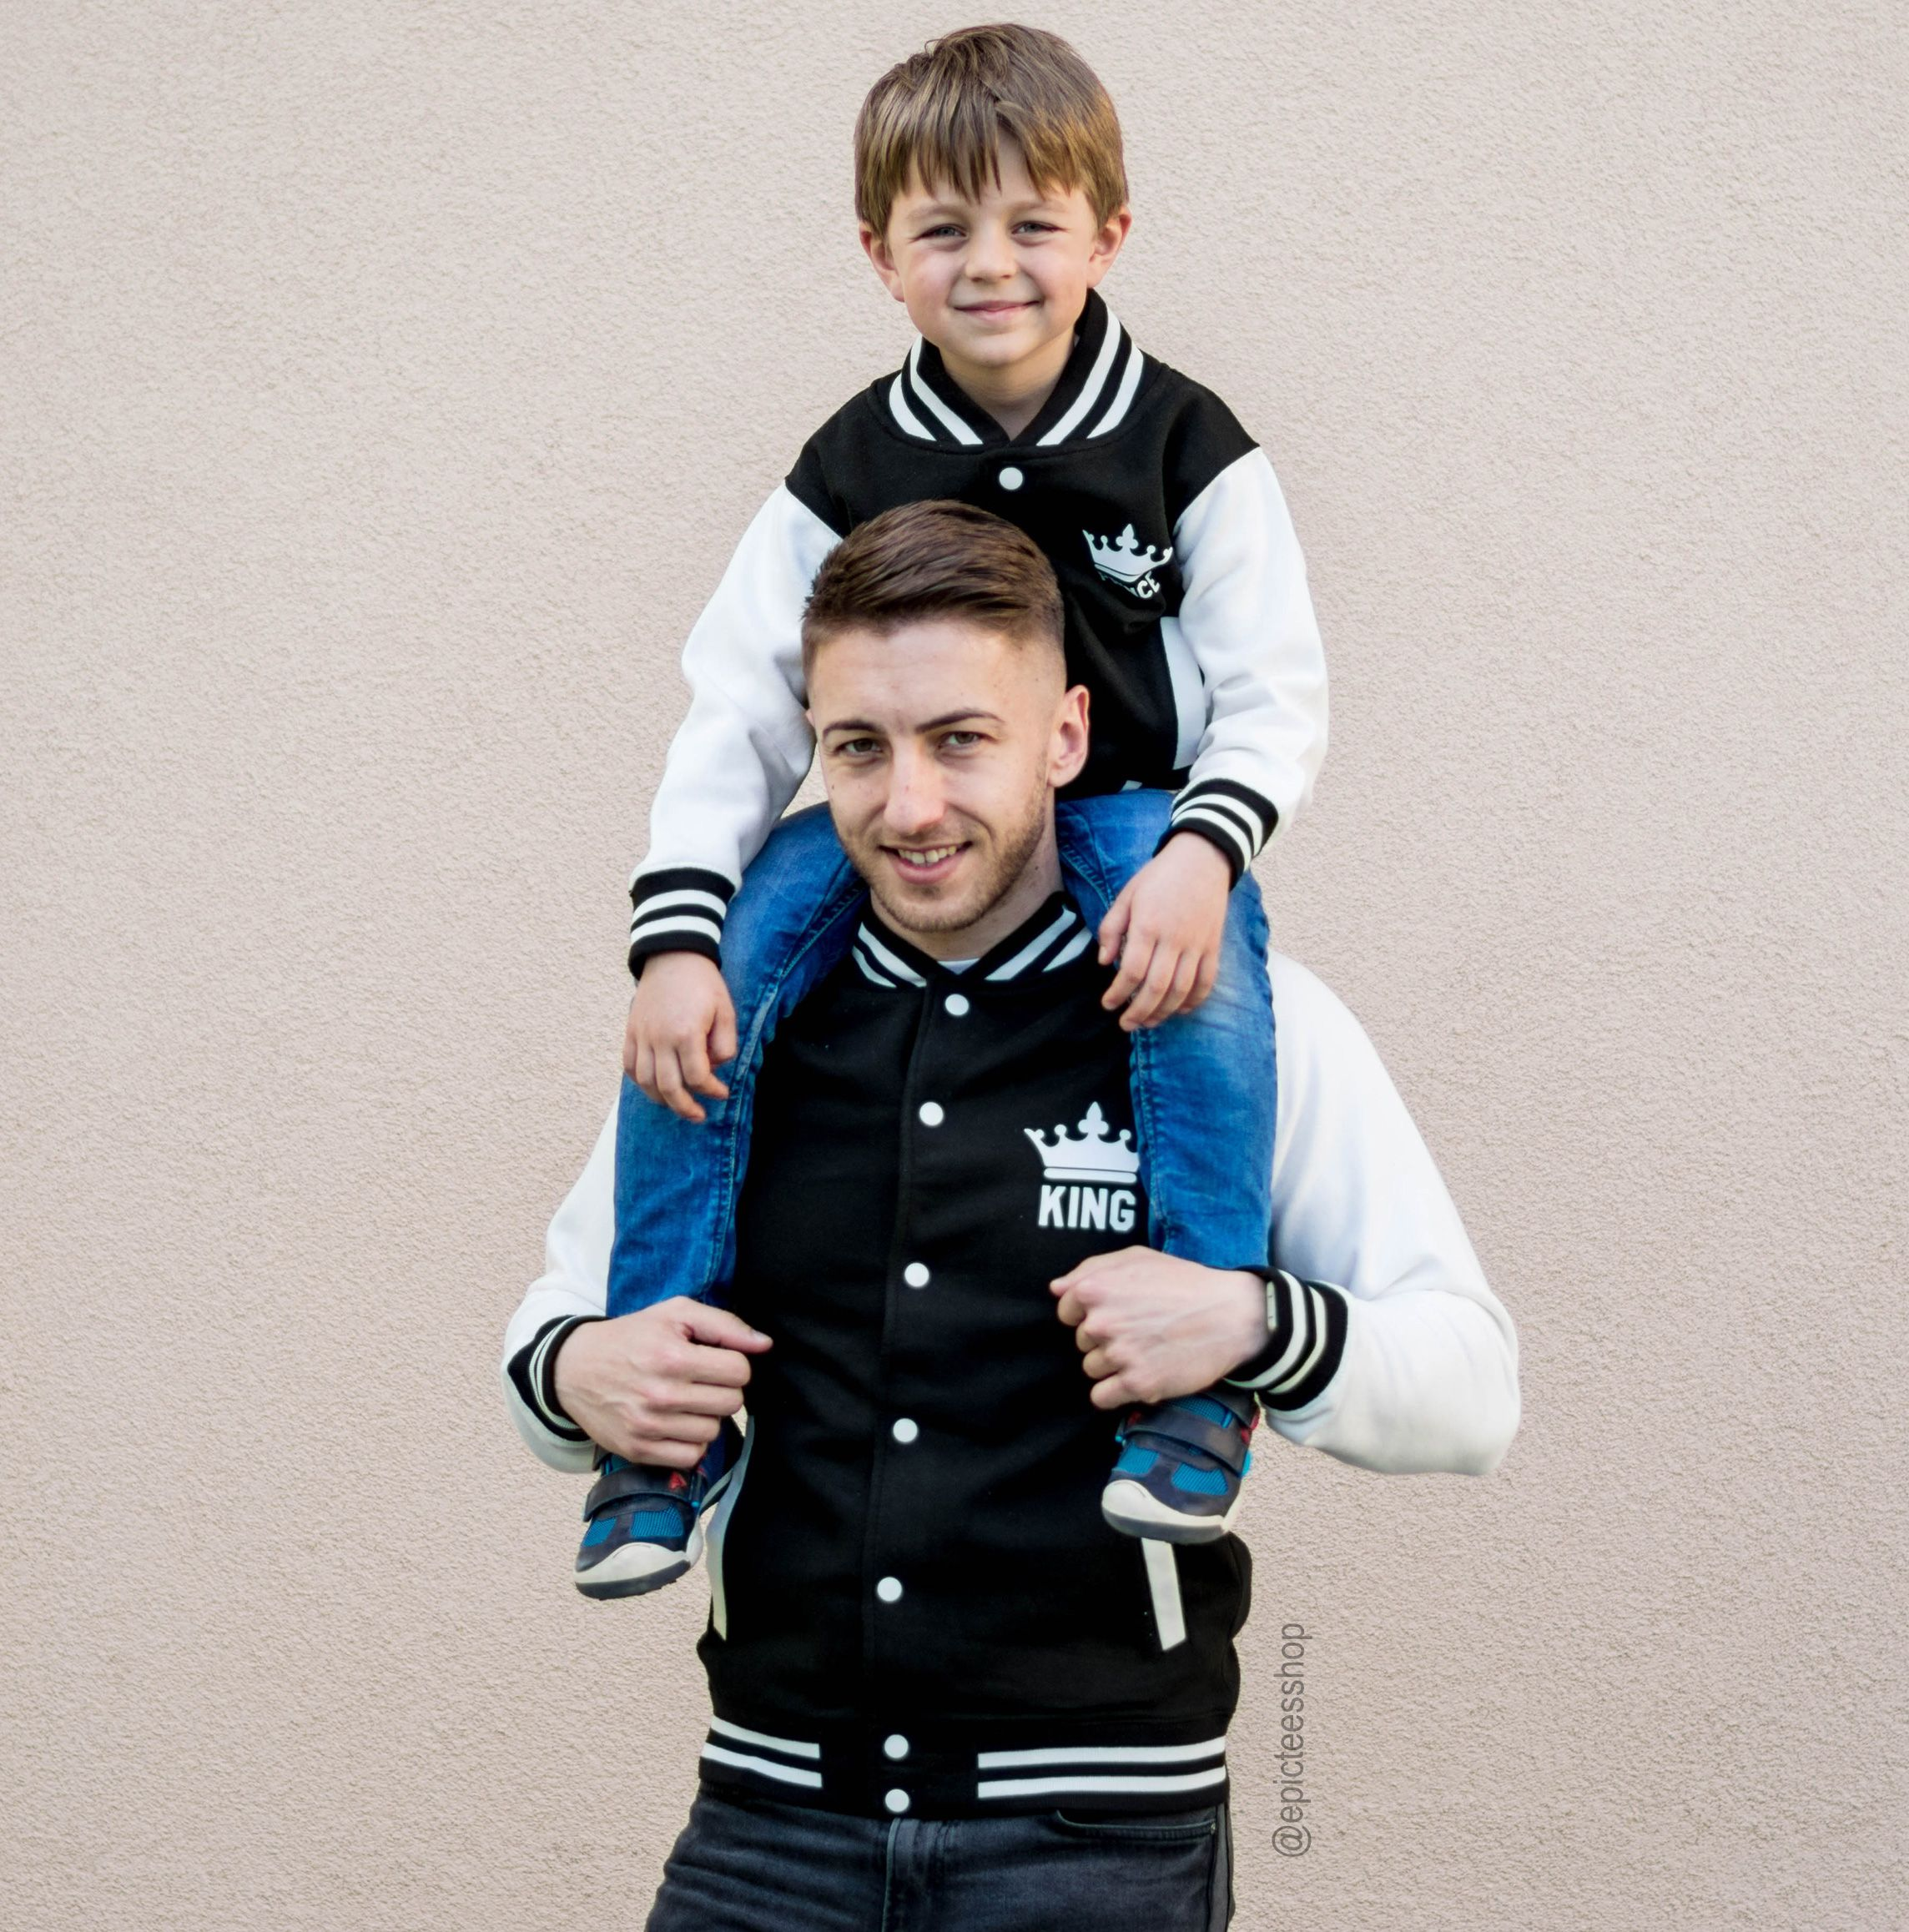 Daddy and Me, Father son jackets, Father's Day Gift, College Jacket, King Prince Jackets, King Prince 01 Jacket, Jackets for Family, UNISEX